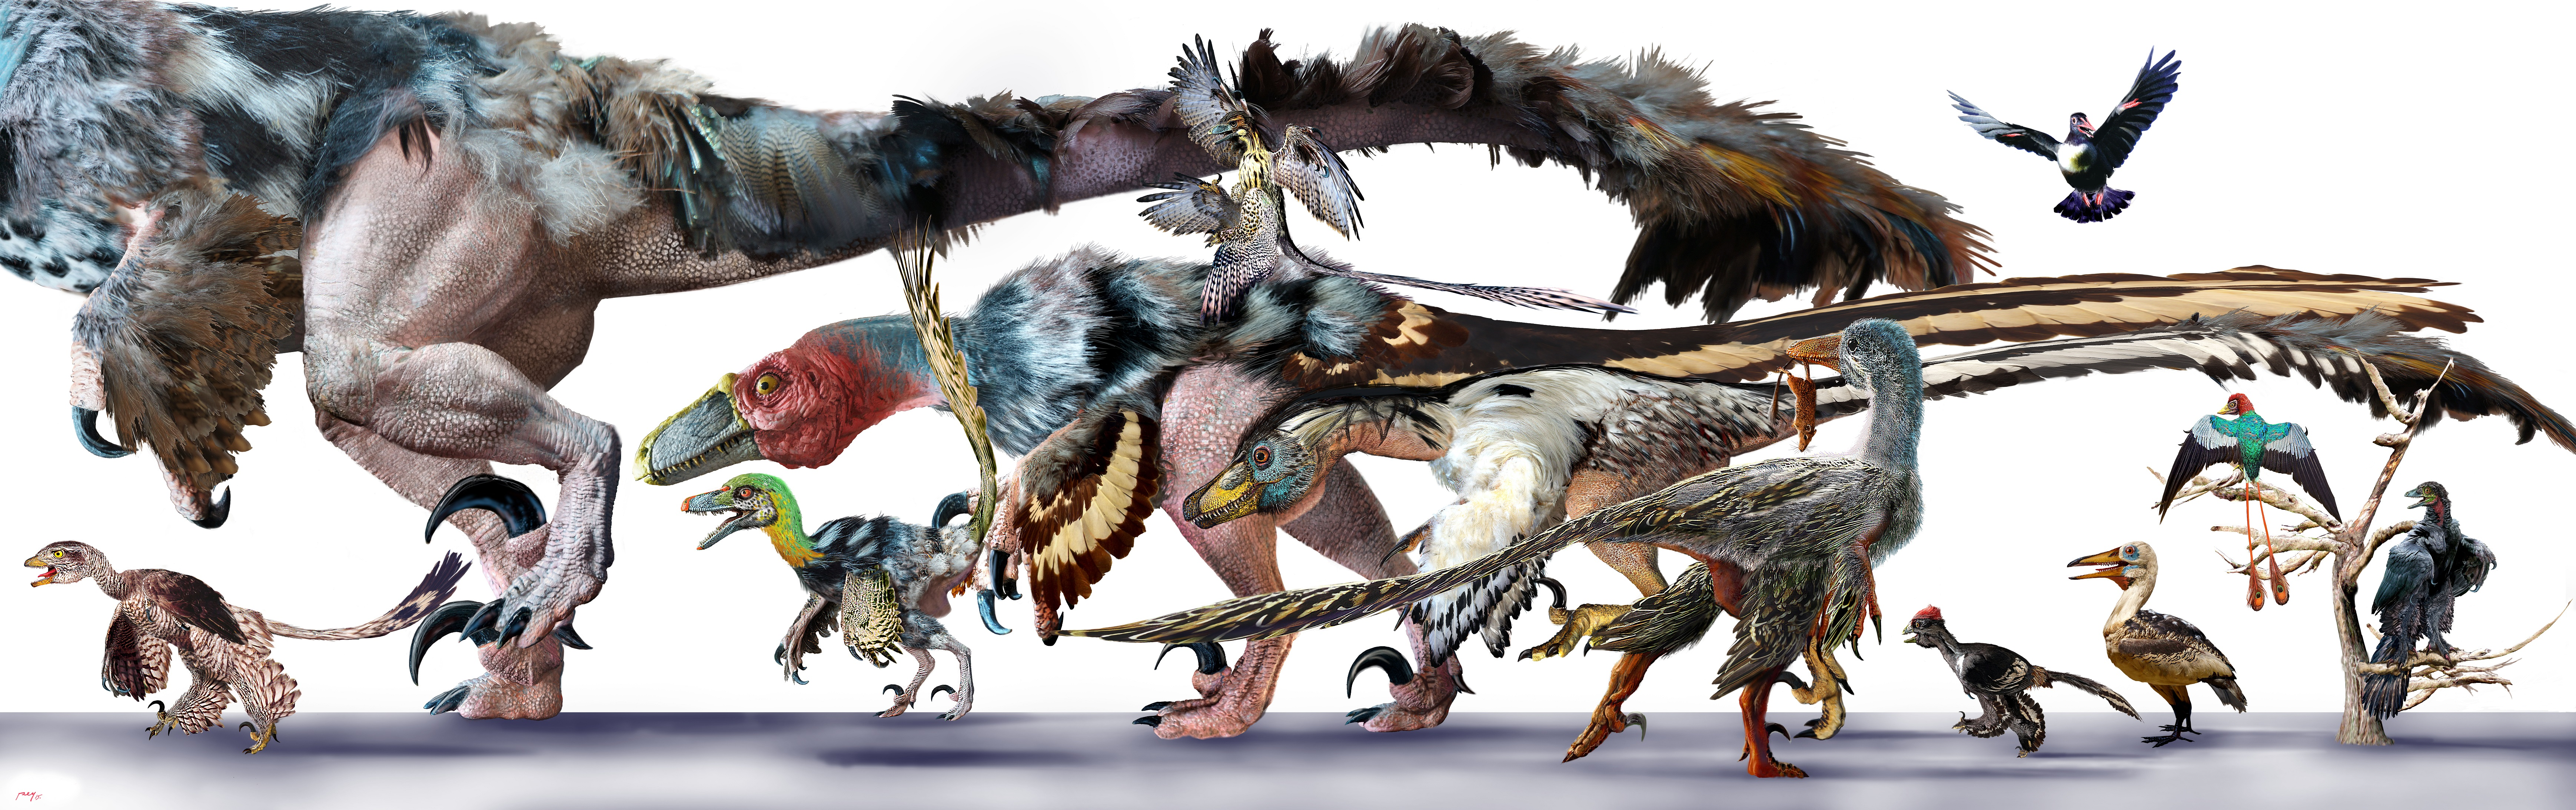 Dinosaurs Take Flight: The Art of Archaeopteryx